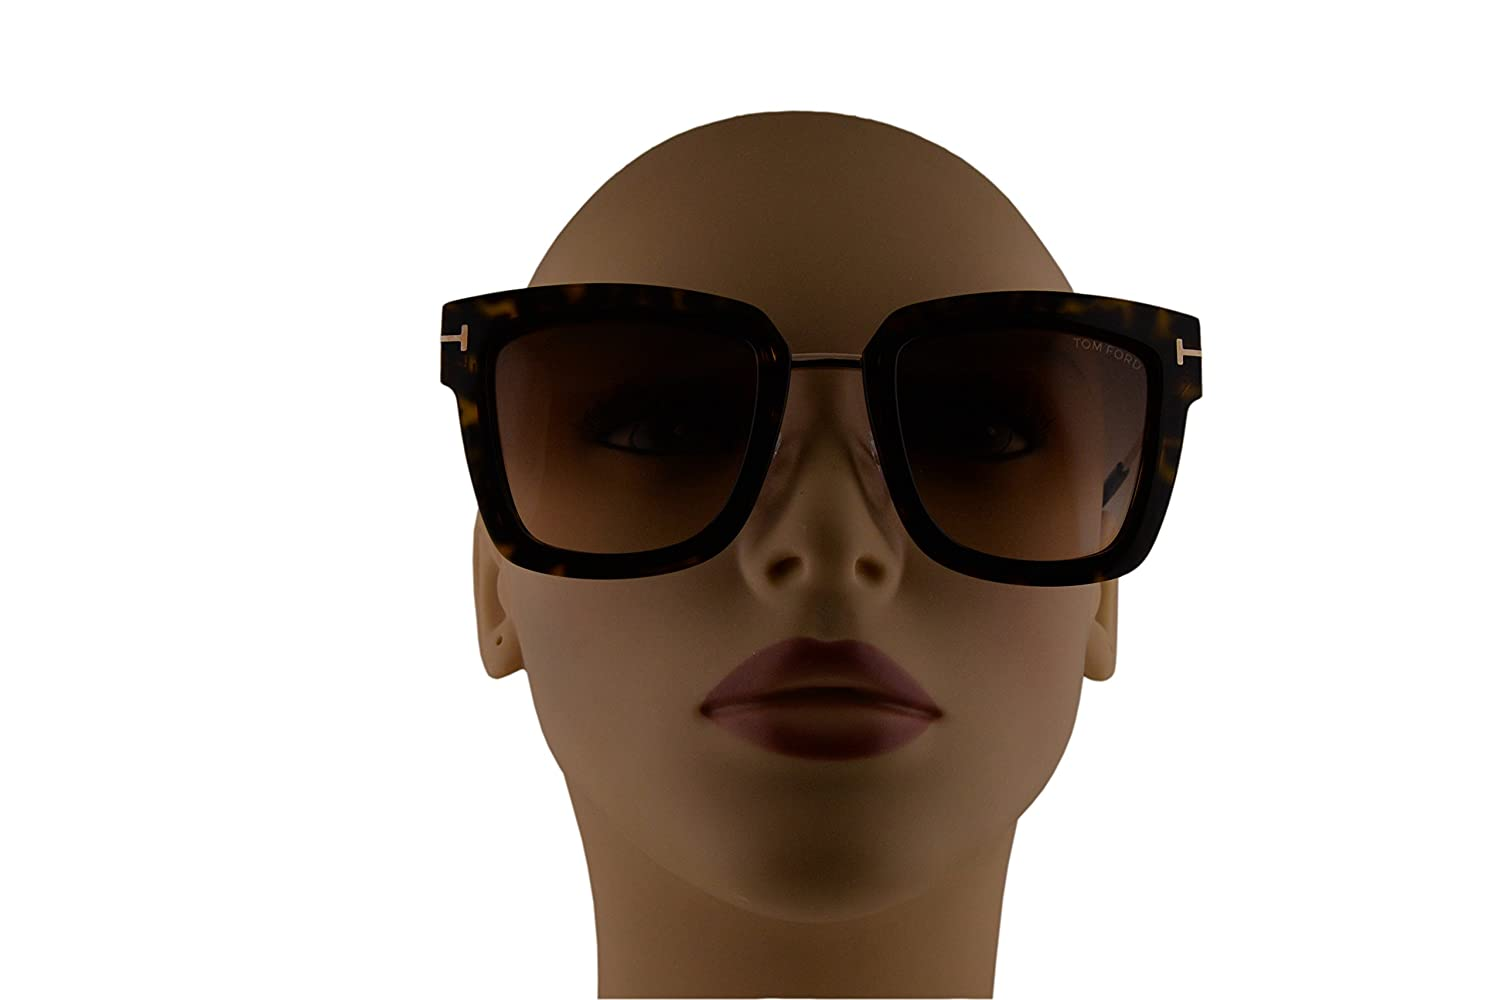 f6b88a80b3a Amazon.com  Tom Ford FT0573 Lara-02 Sunglasses Dark Havana w Brown Gradient  Lens 52F TF573  Clothing